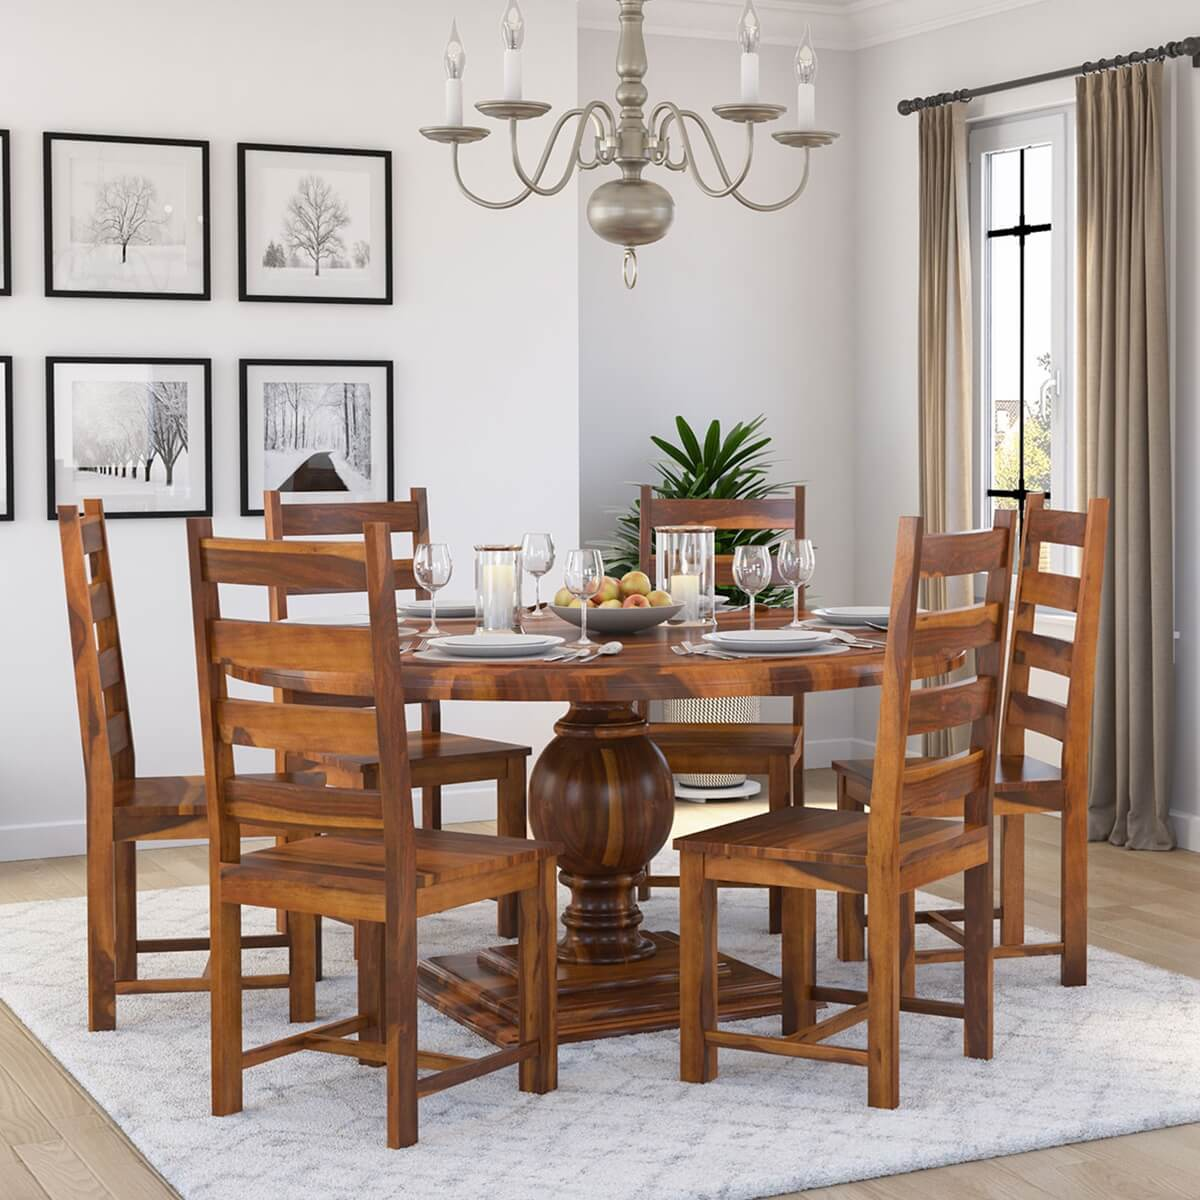 Cloverdale Solid Wood Round Dining Table With 6 Chairs Set